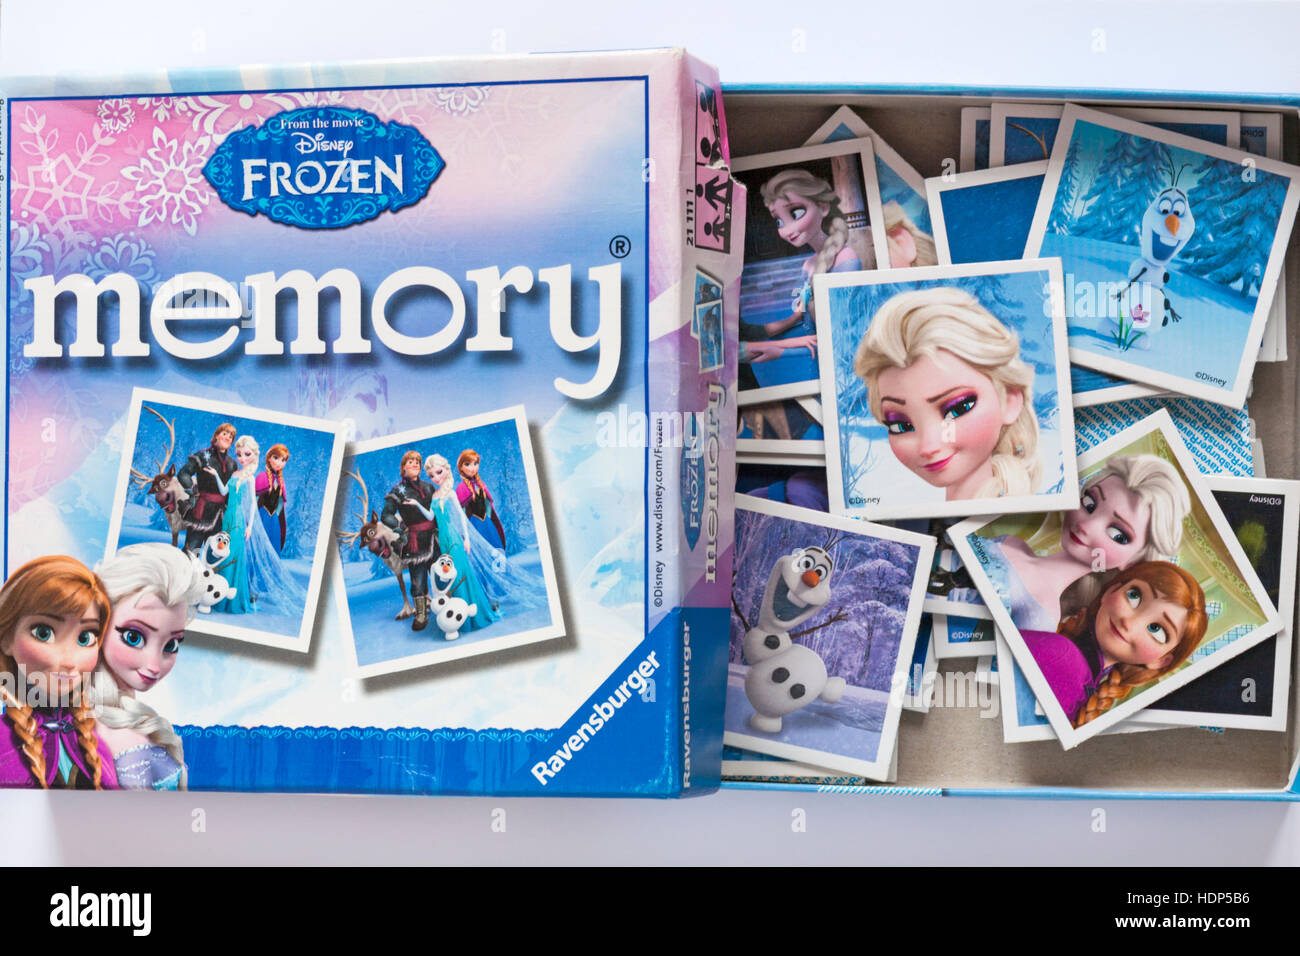 Uncategorized Disney Memory Game from the movie disney frozen memory game set on white background background